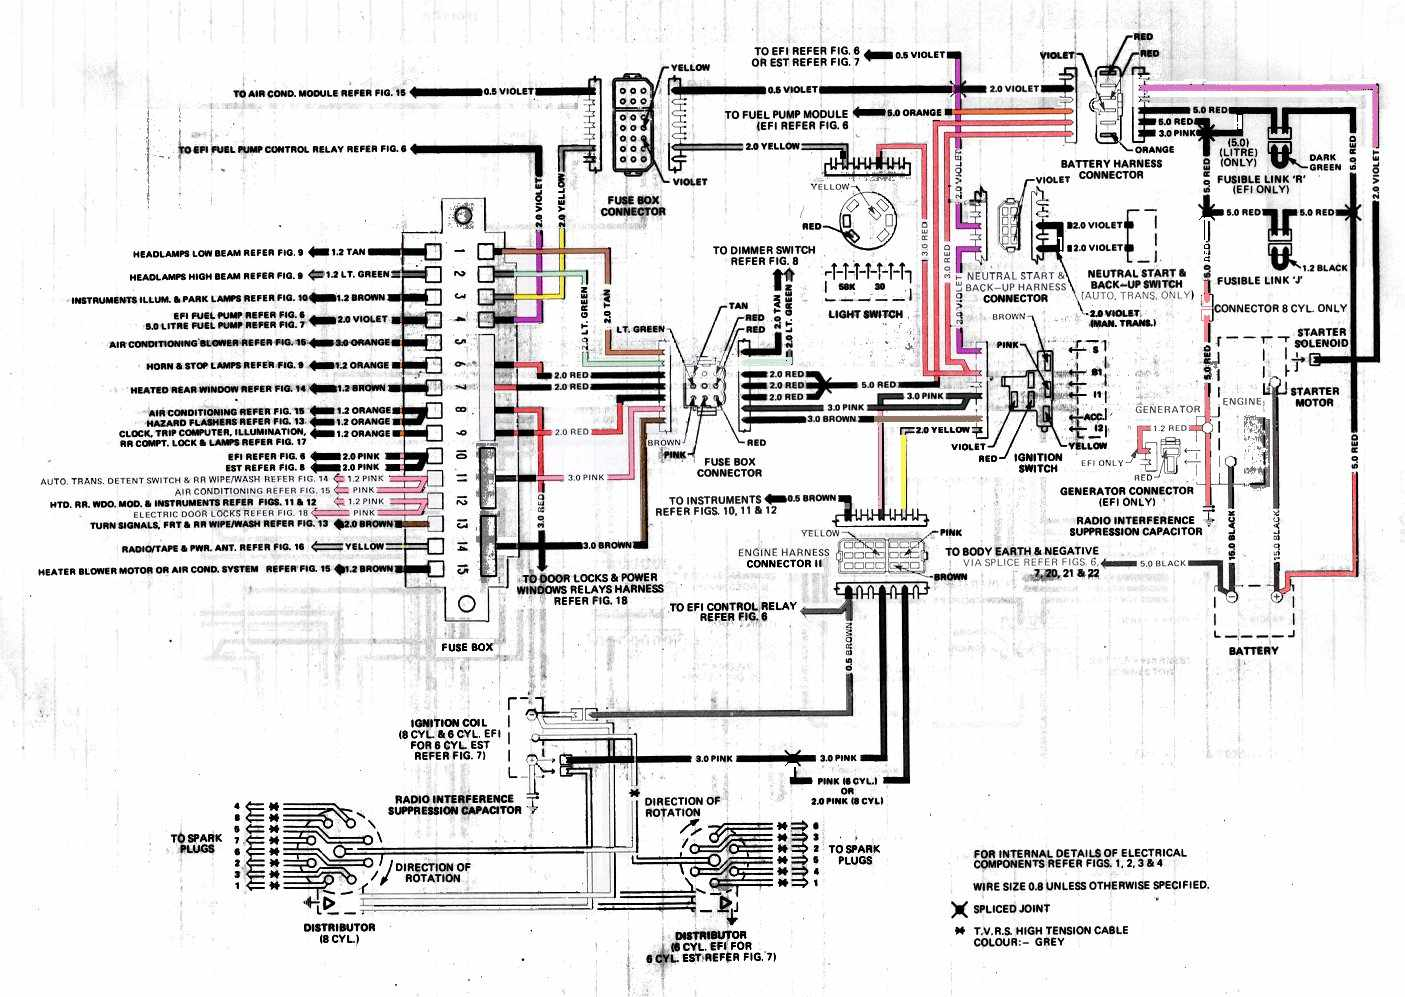 medium resolution of electrical diagrams free download electrical diagrams wiring diagrams electrical electrical wiring diagrams residential and commercial and many more